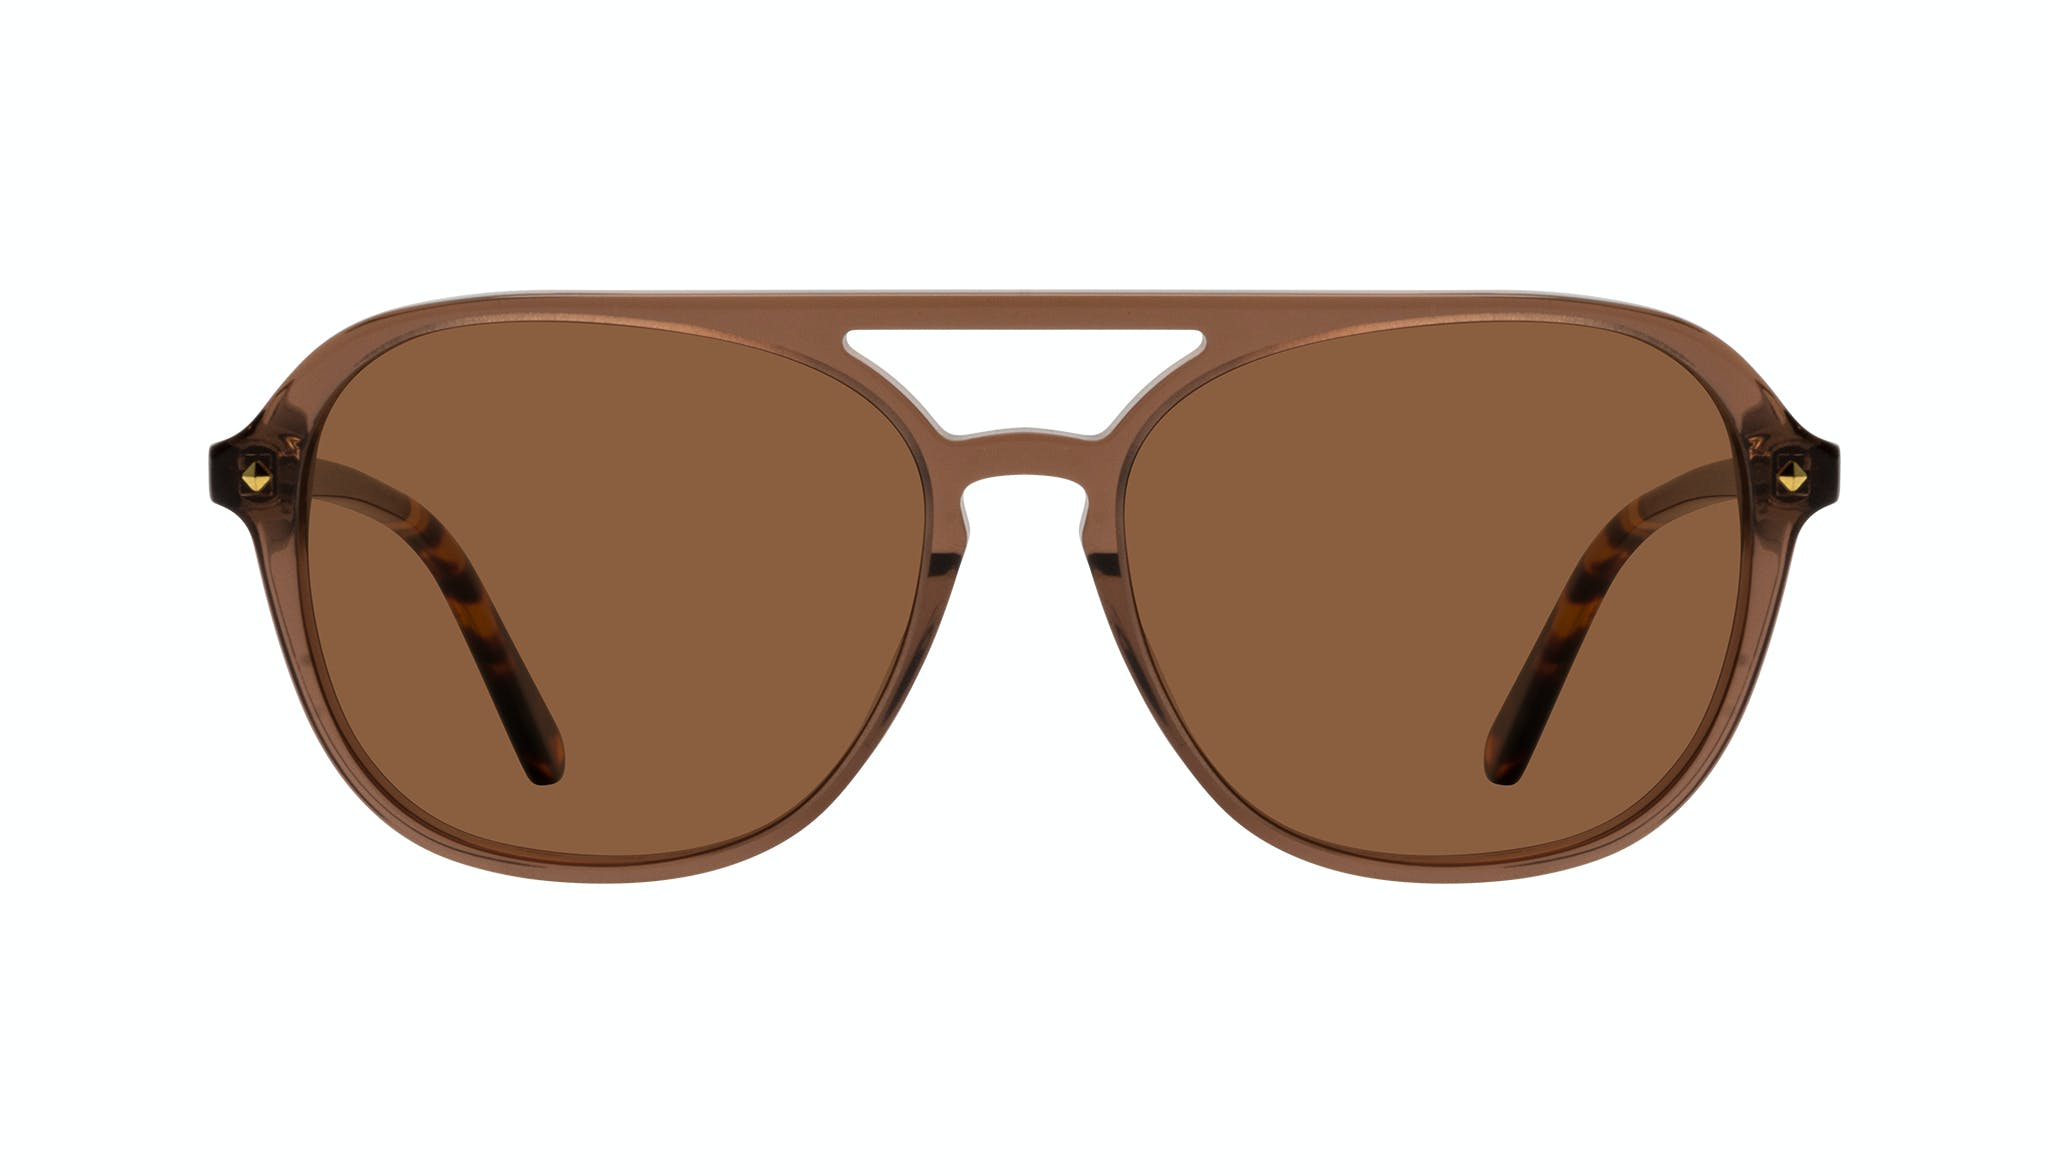 Affordable Fashion Glasses Aviator Sunglasses Women Jerry Terra Front